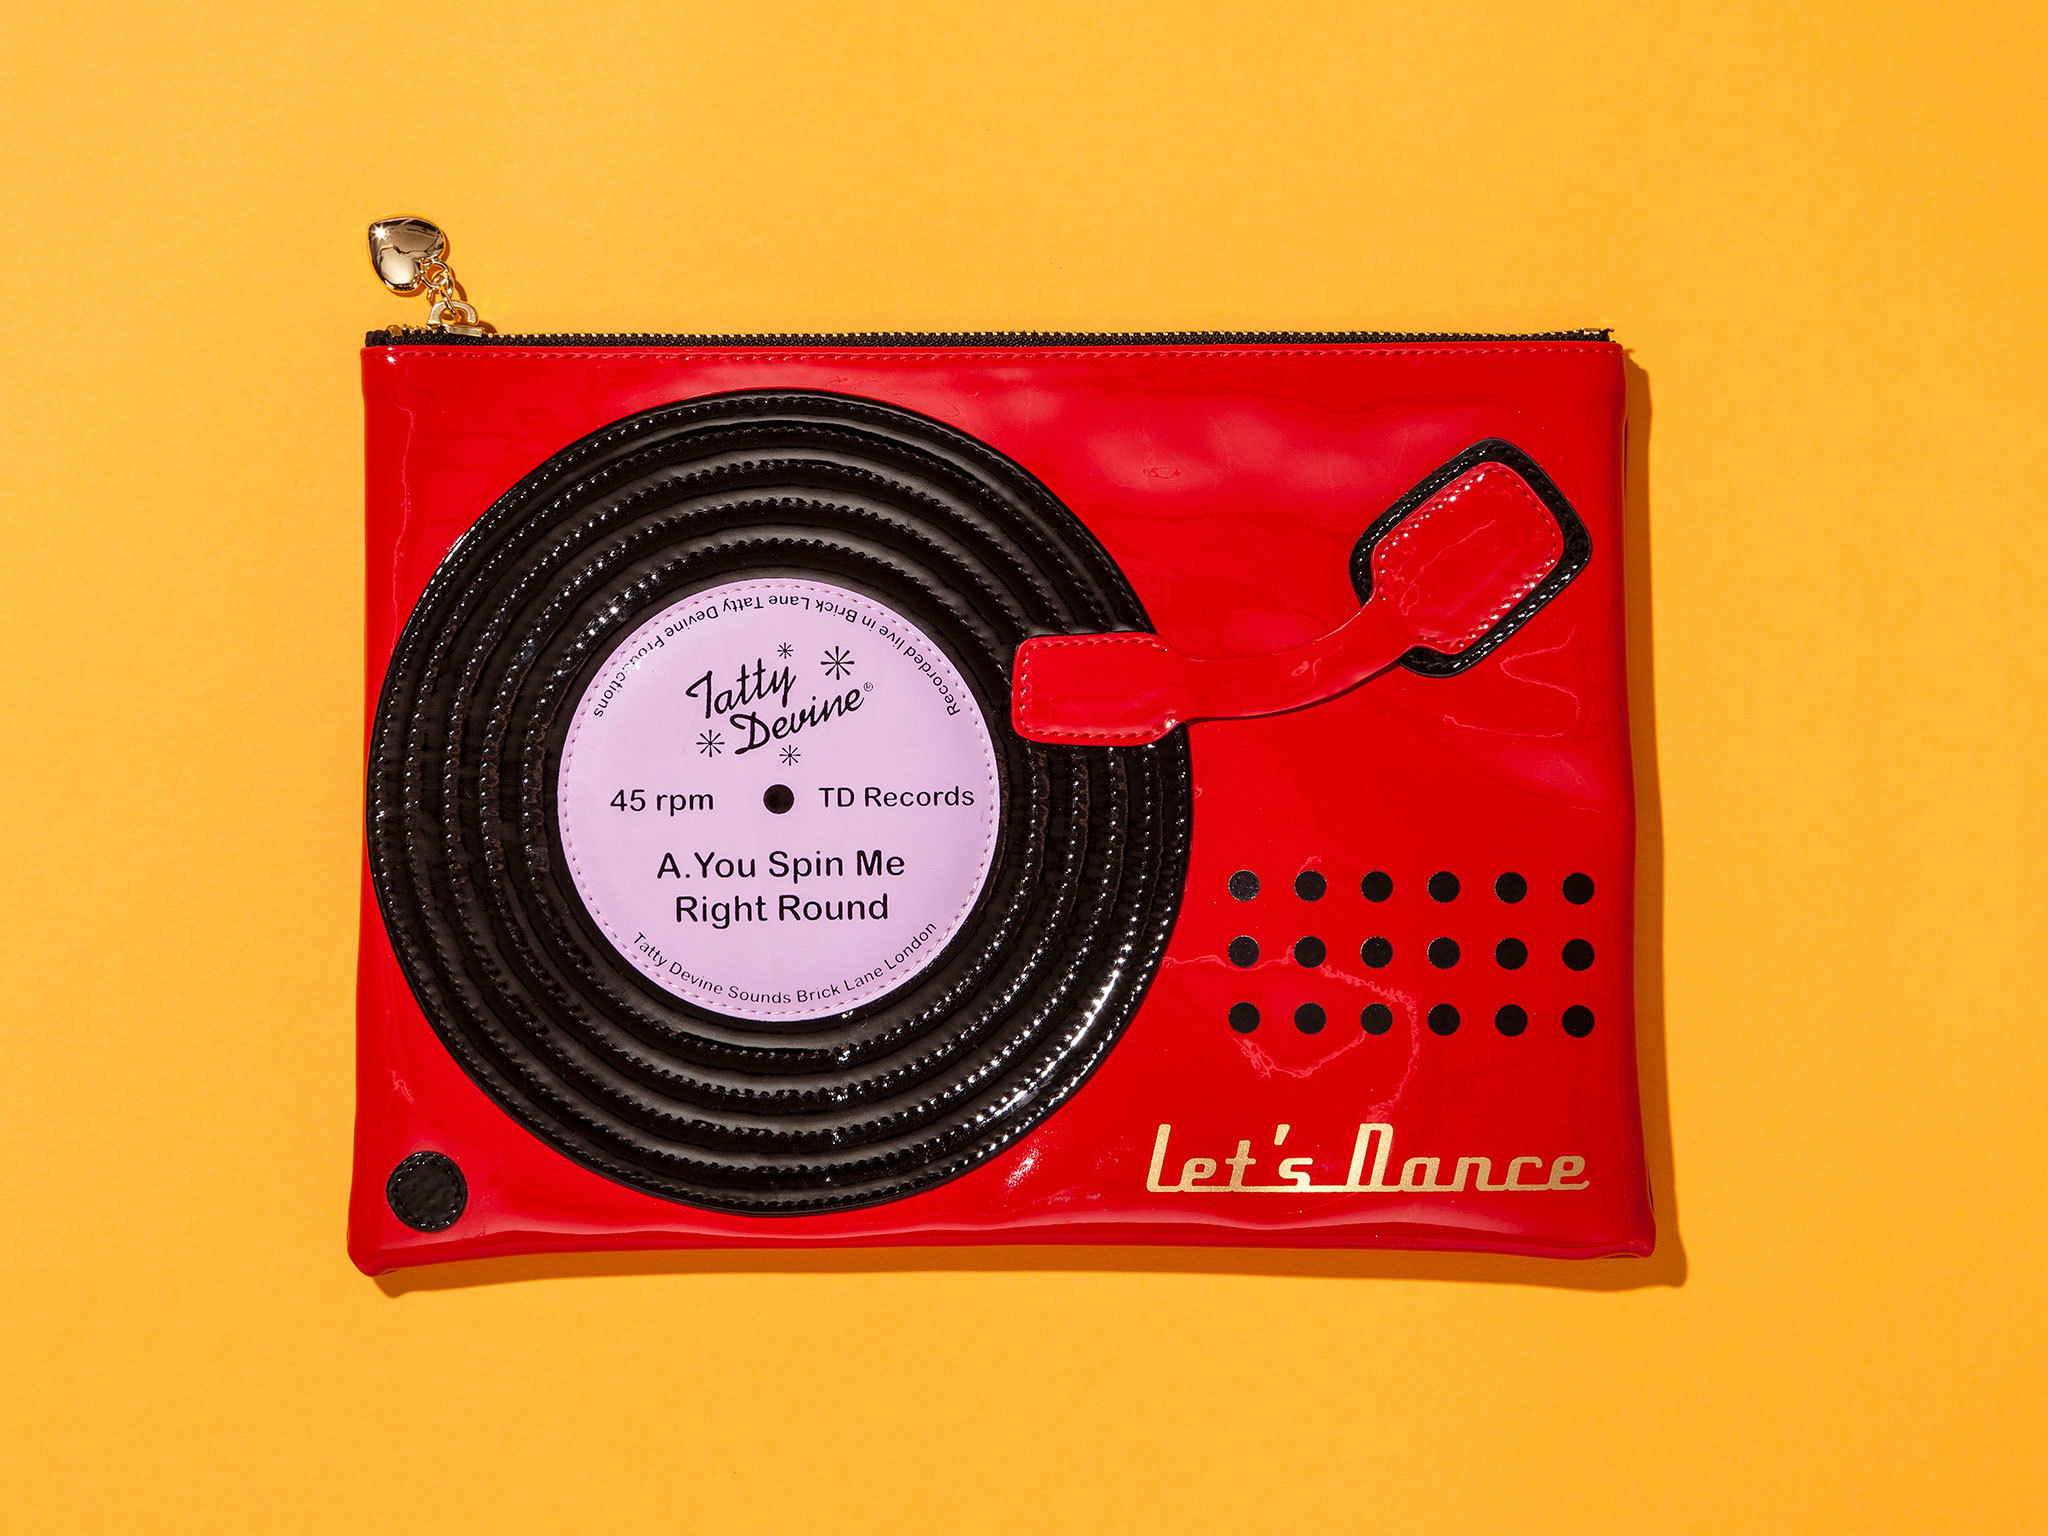 Christmas gift guide: music - Record player pouch